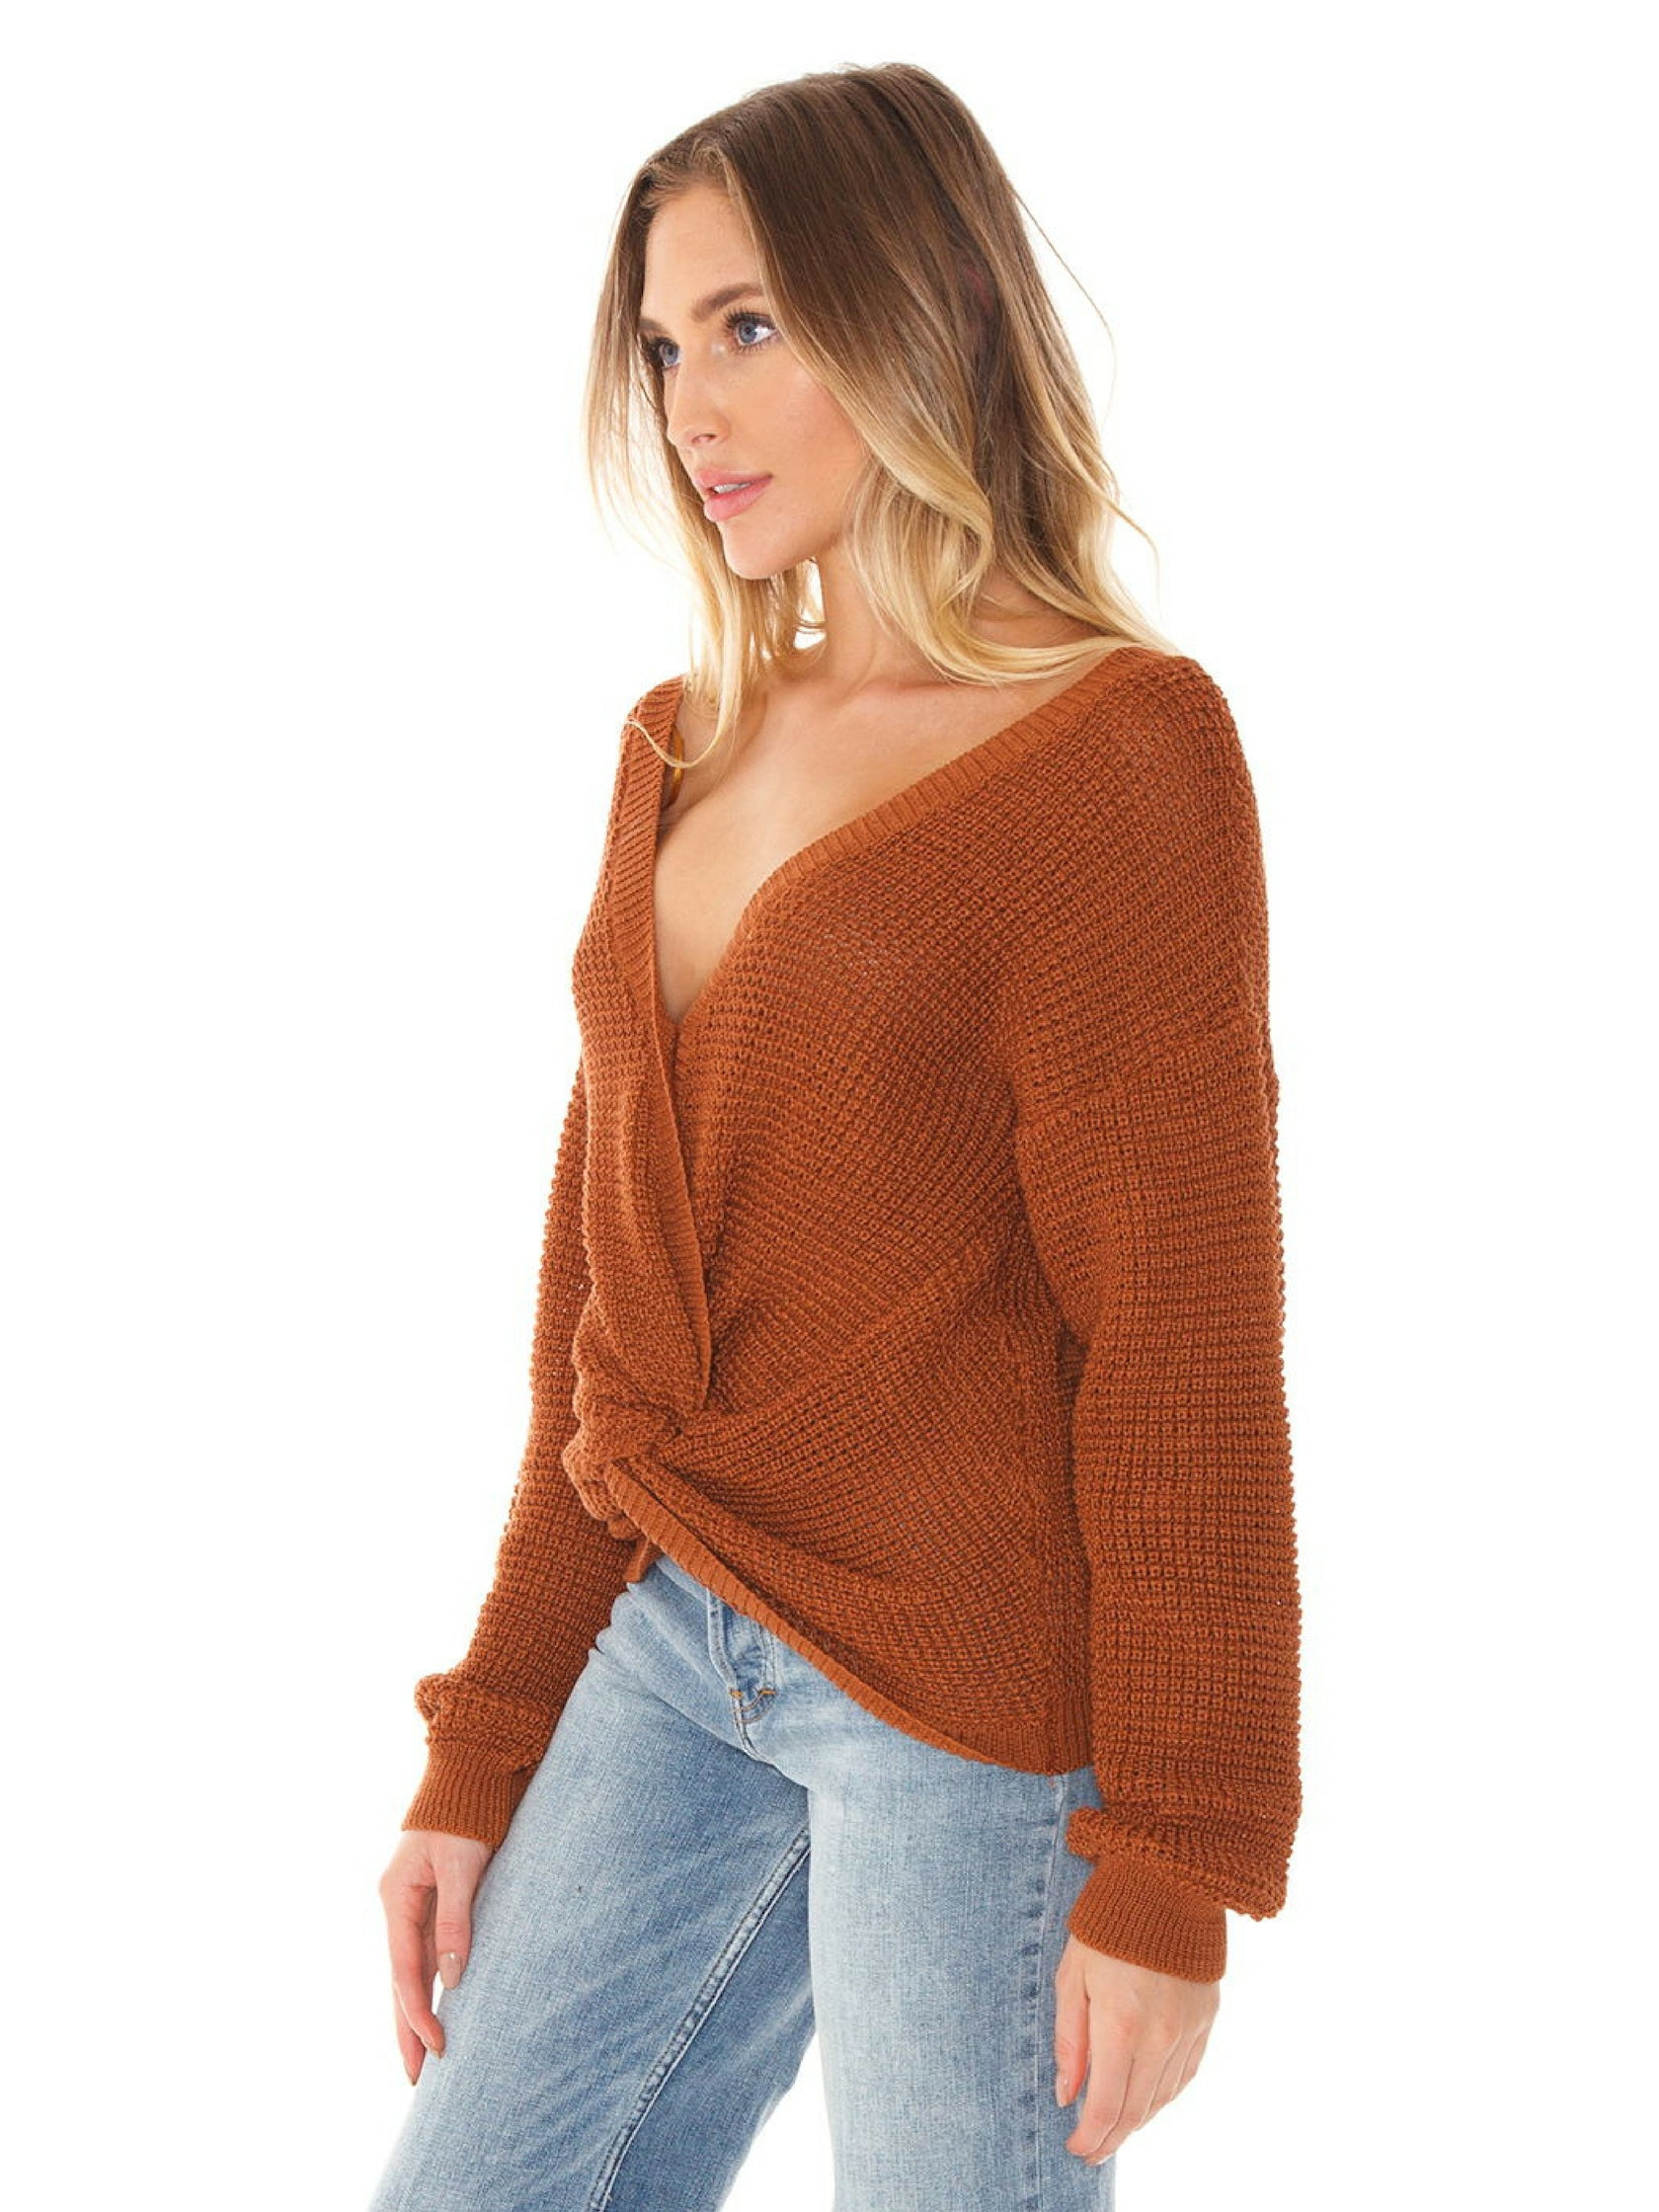 Women wearing a sweater rental from FASHIONPASS called Kylie Twist Front Sweater